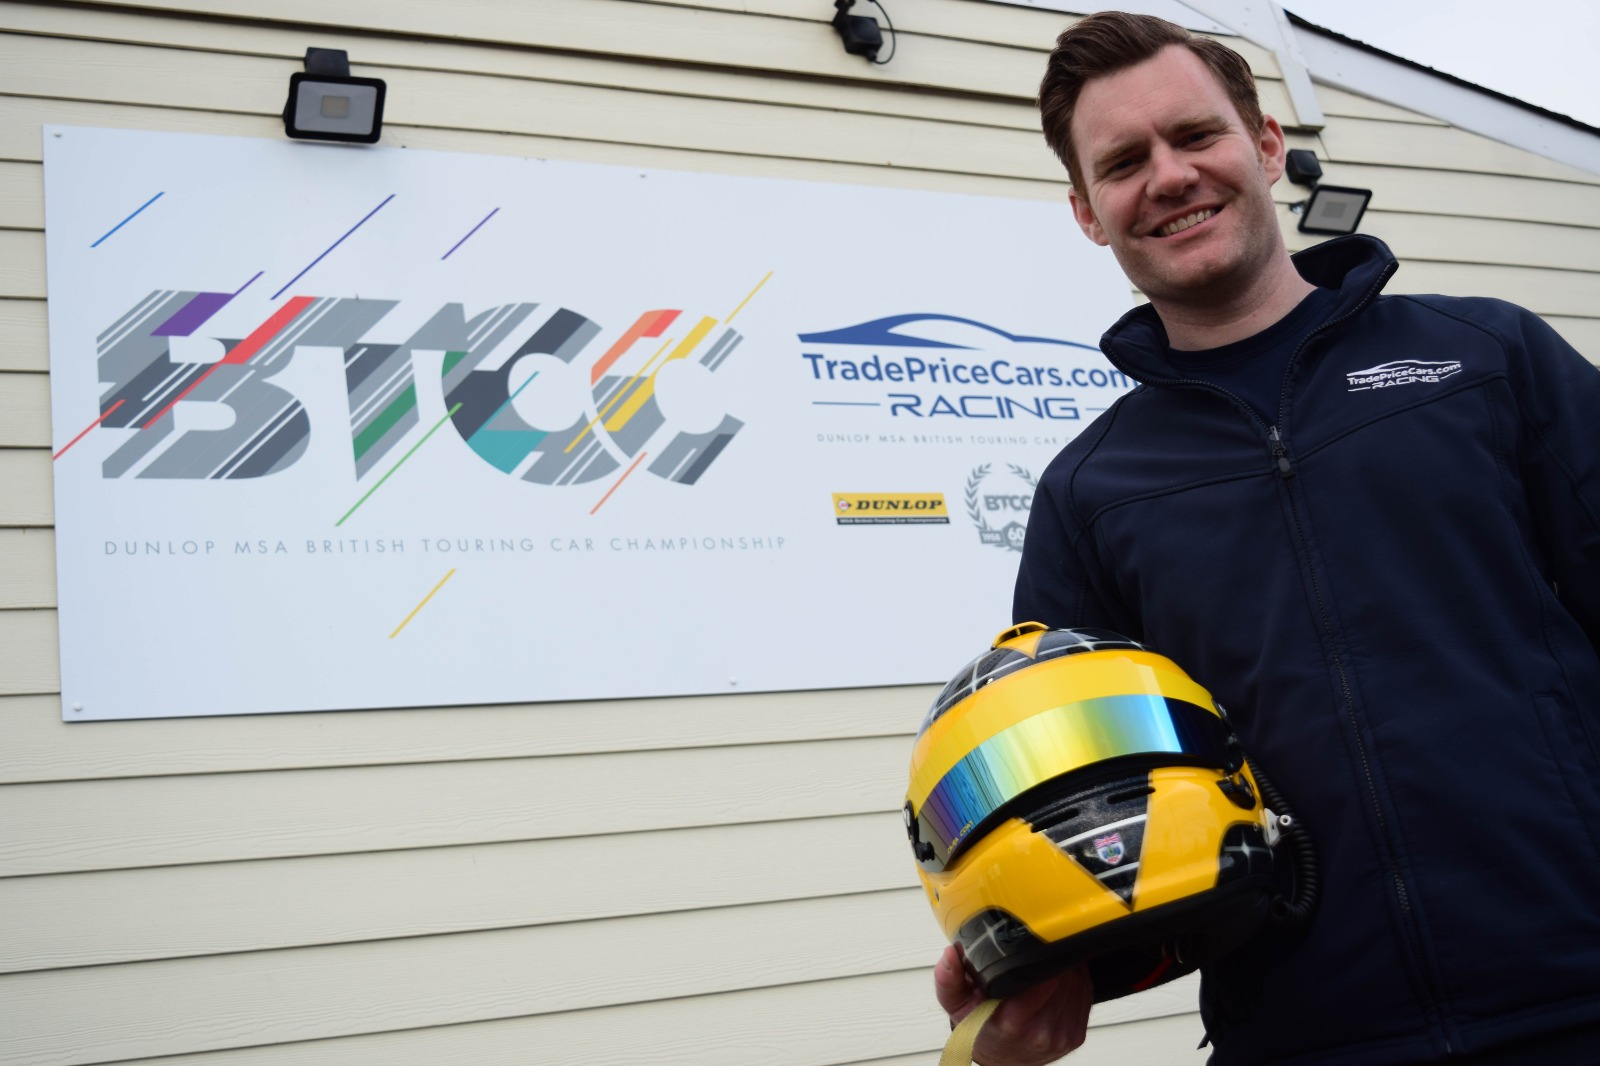 James Gornall completes Trade Price Cars Racing line-up